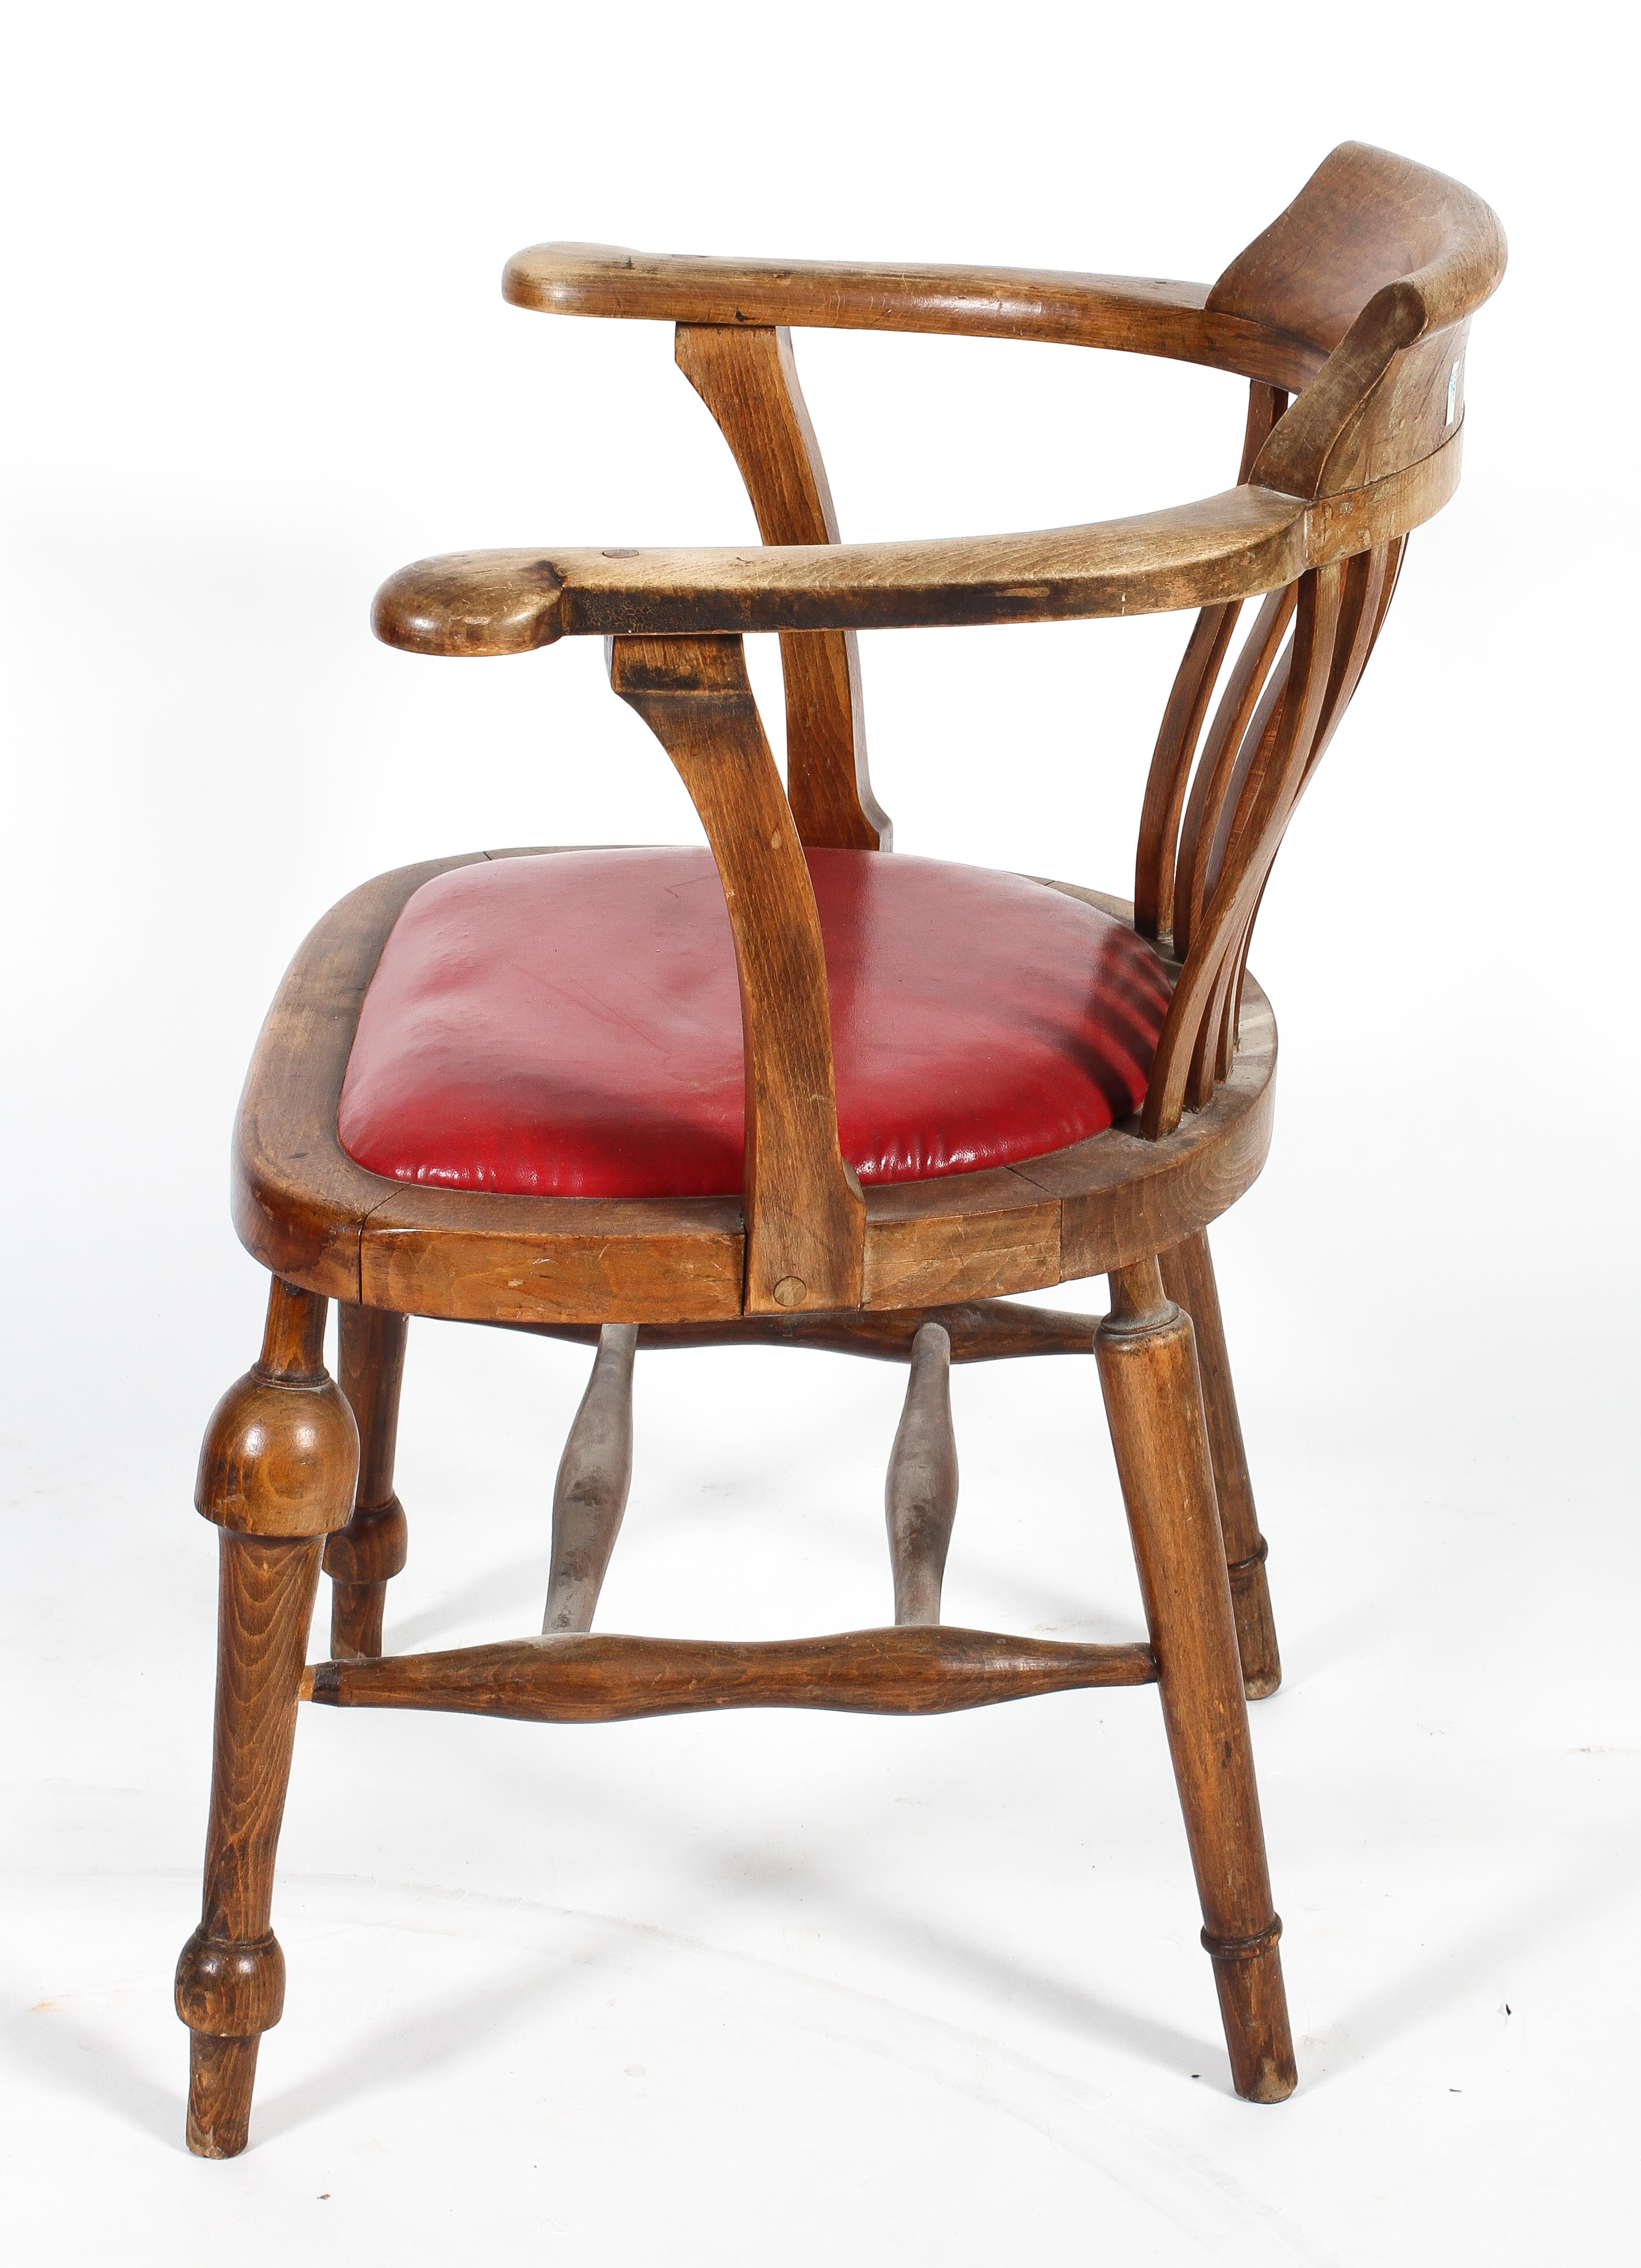 An Edwardian elm desk chair, with lathe back and padded seat, - Image 2 of 2